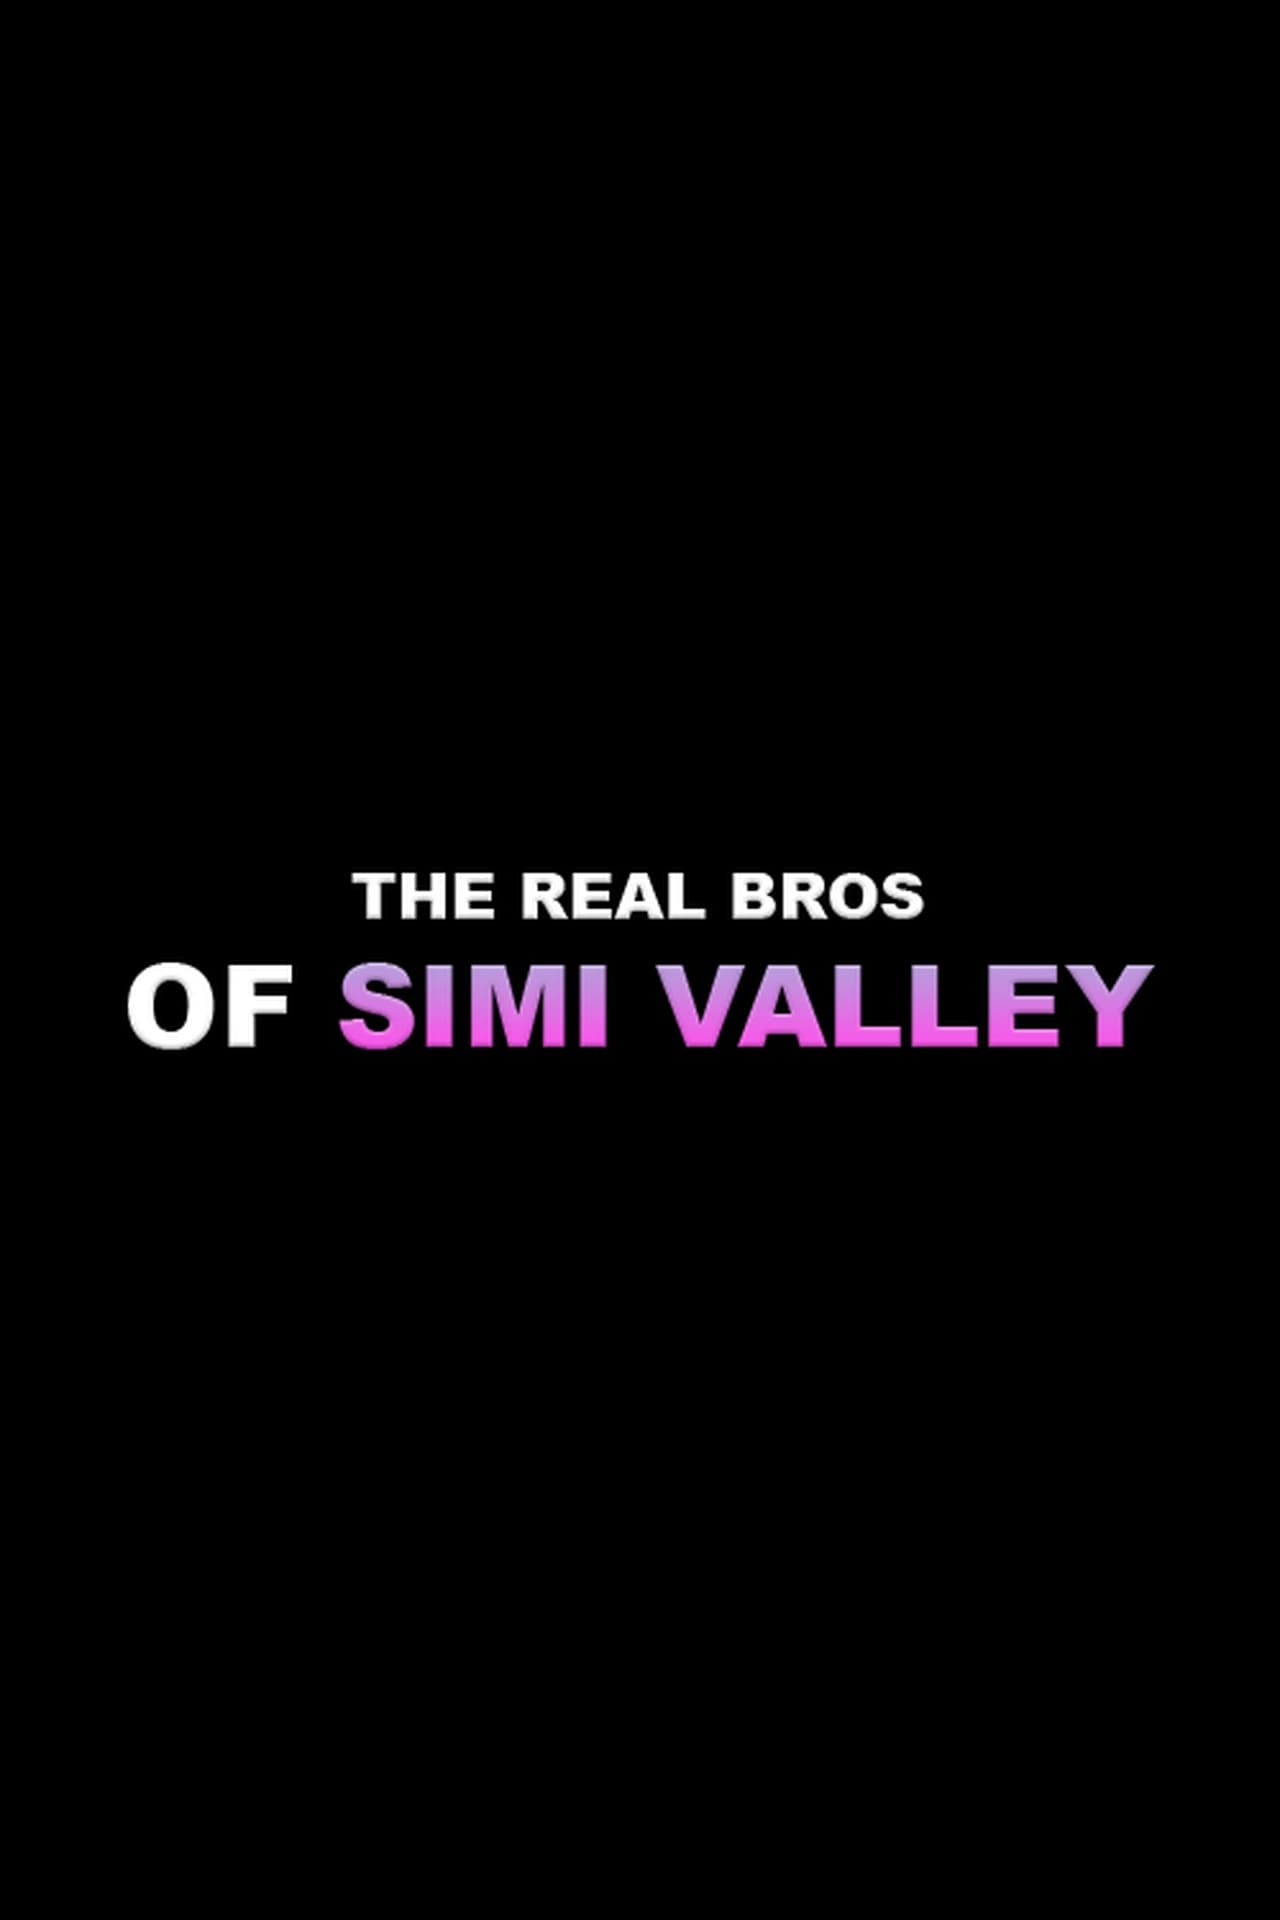 The Real Bros of Simi Valley